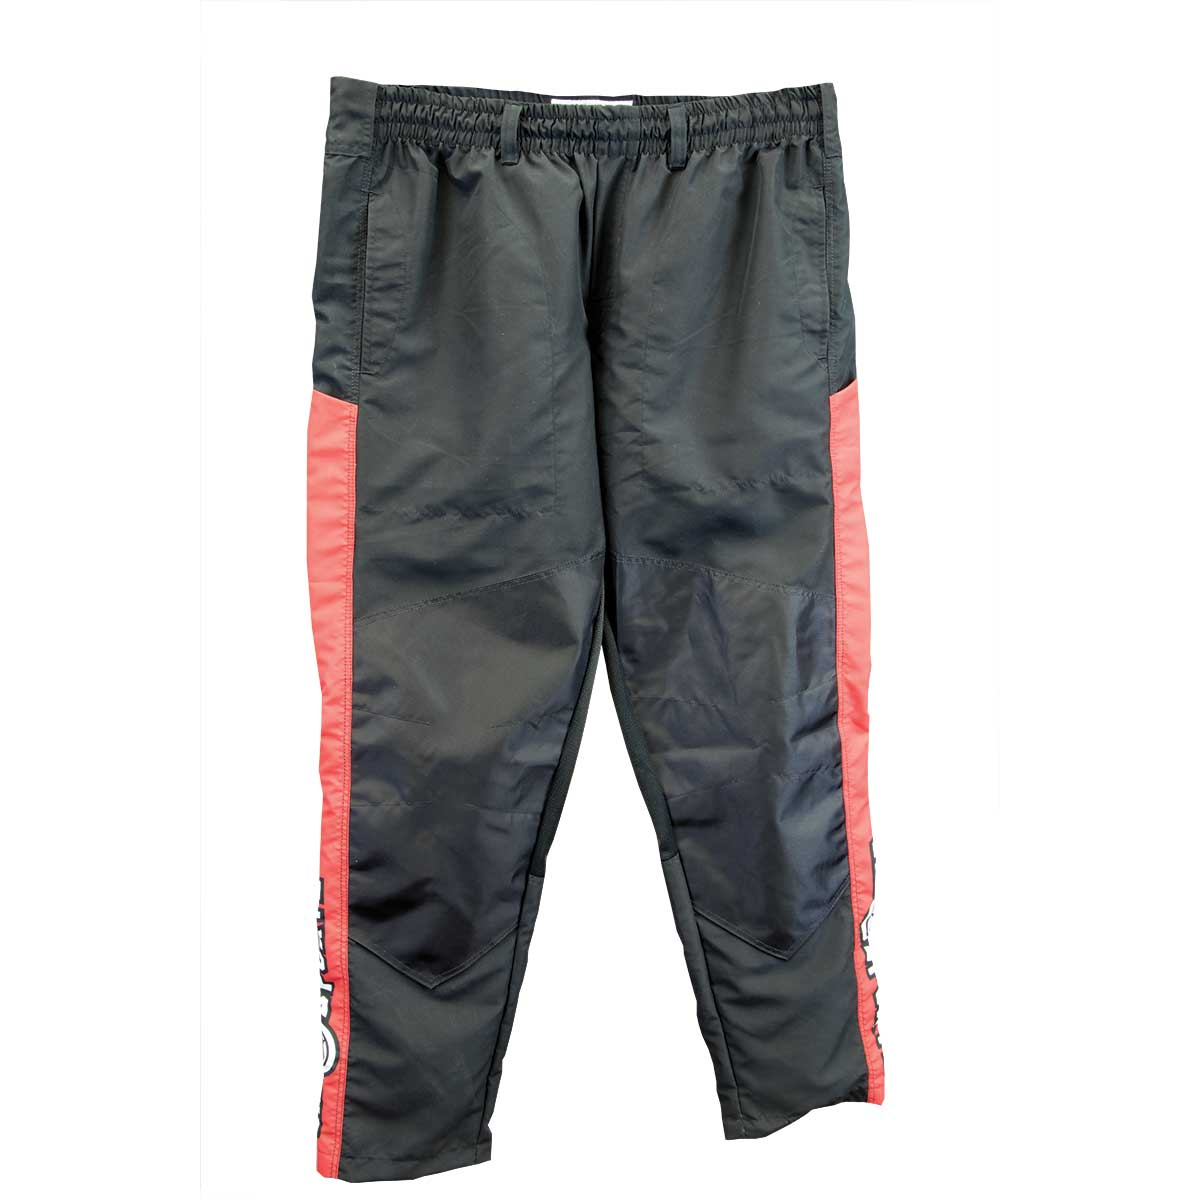 GI Sportz Grind Paintball Pants - Black / Red